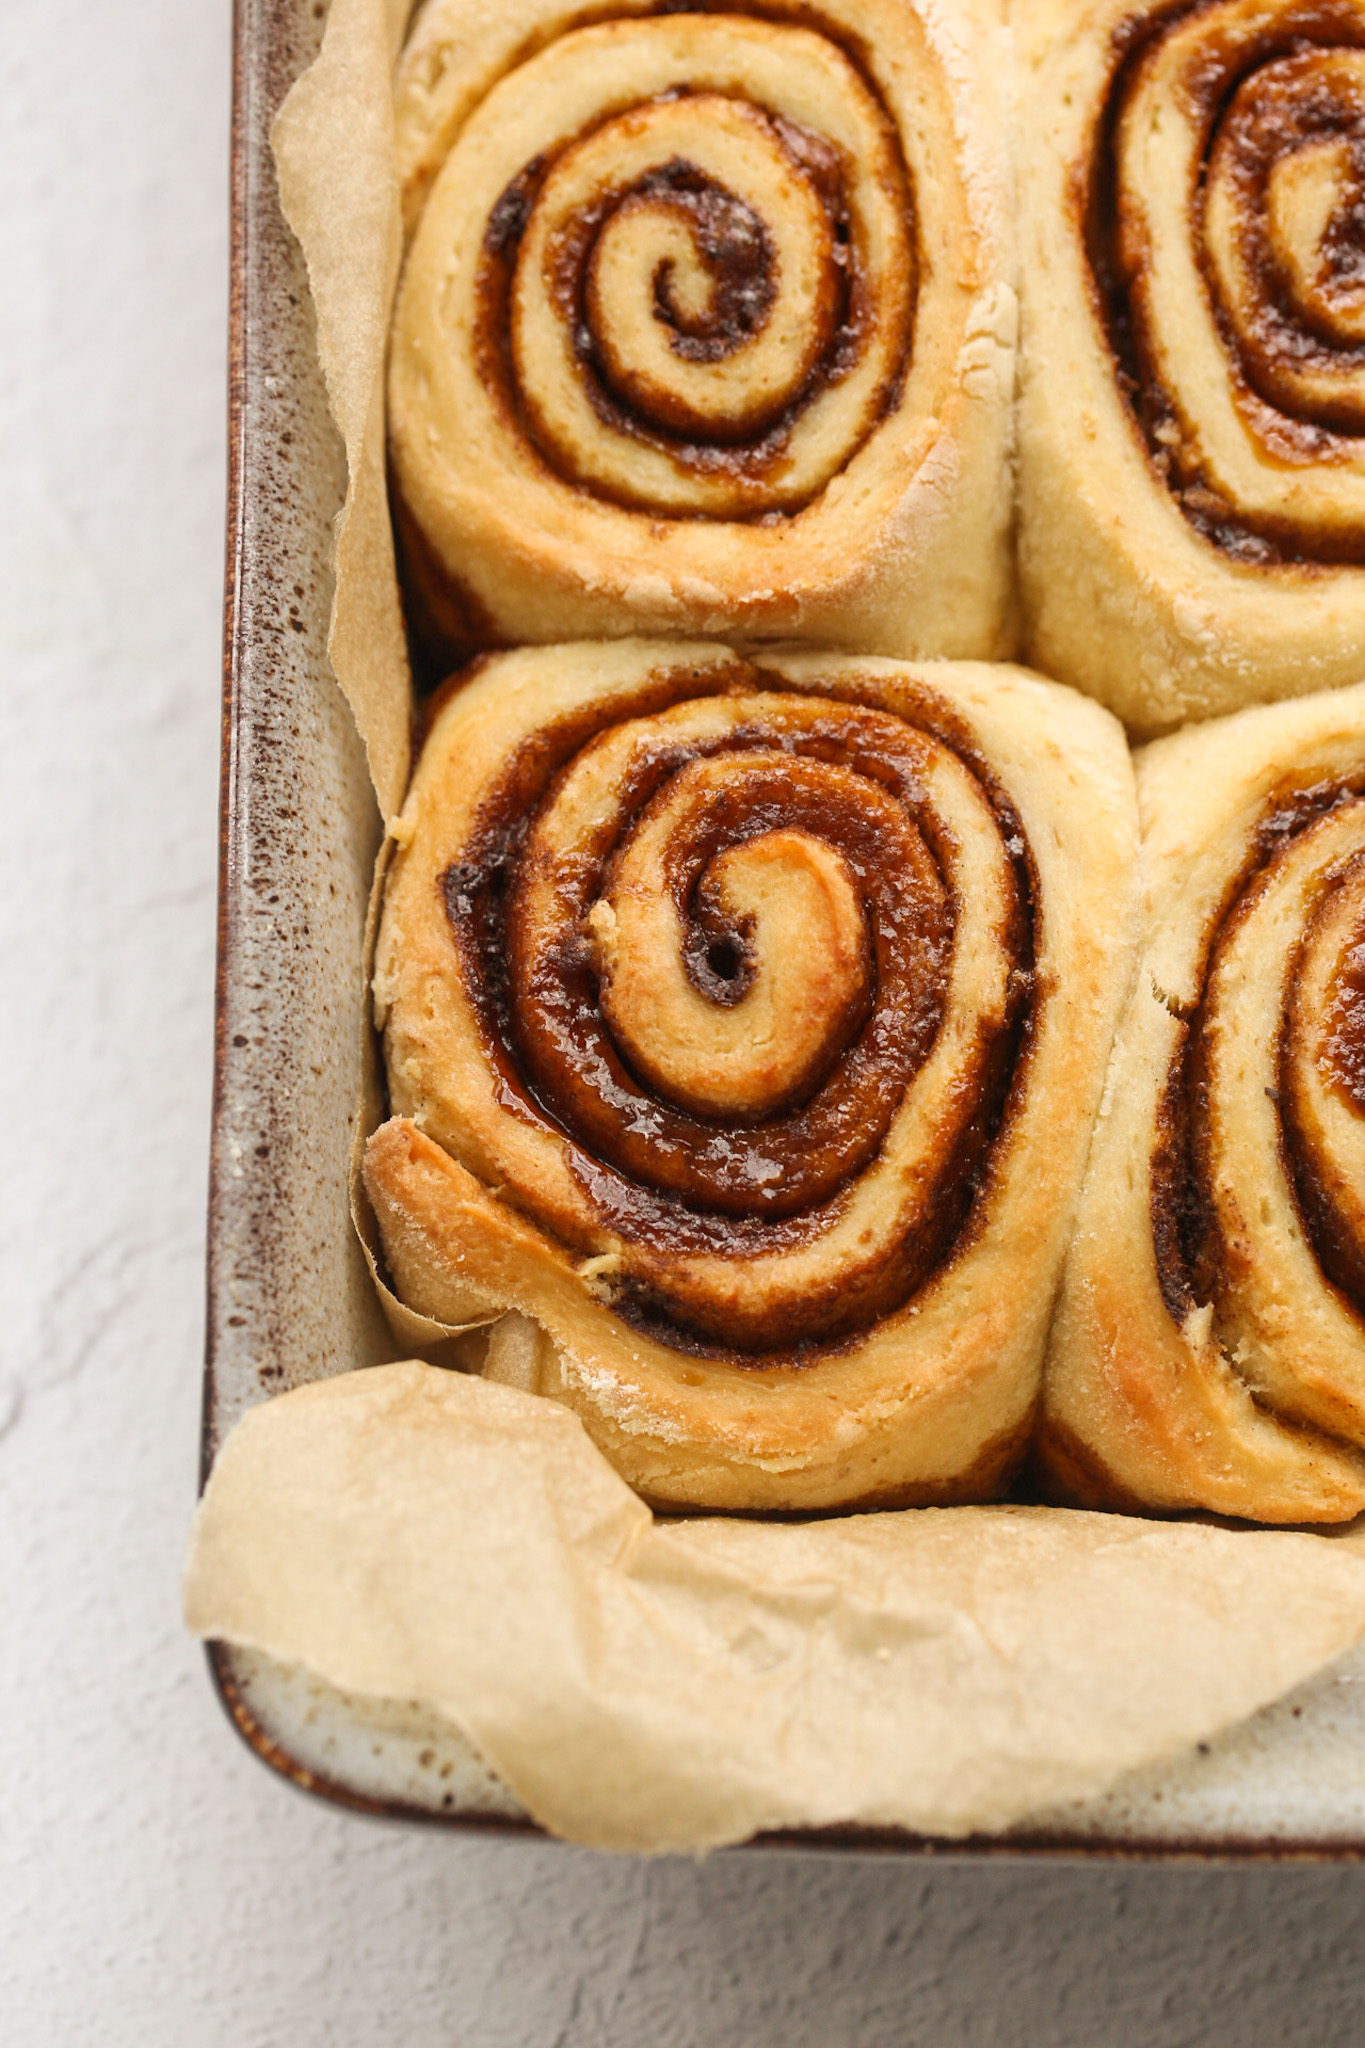 Baked, unfrosted cinnamon buns